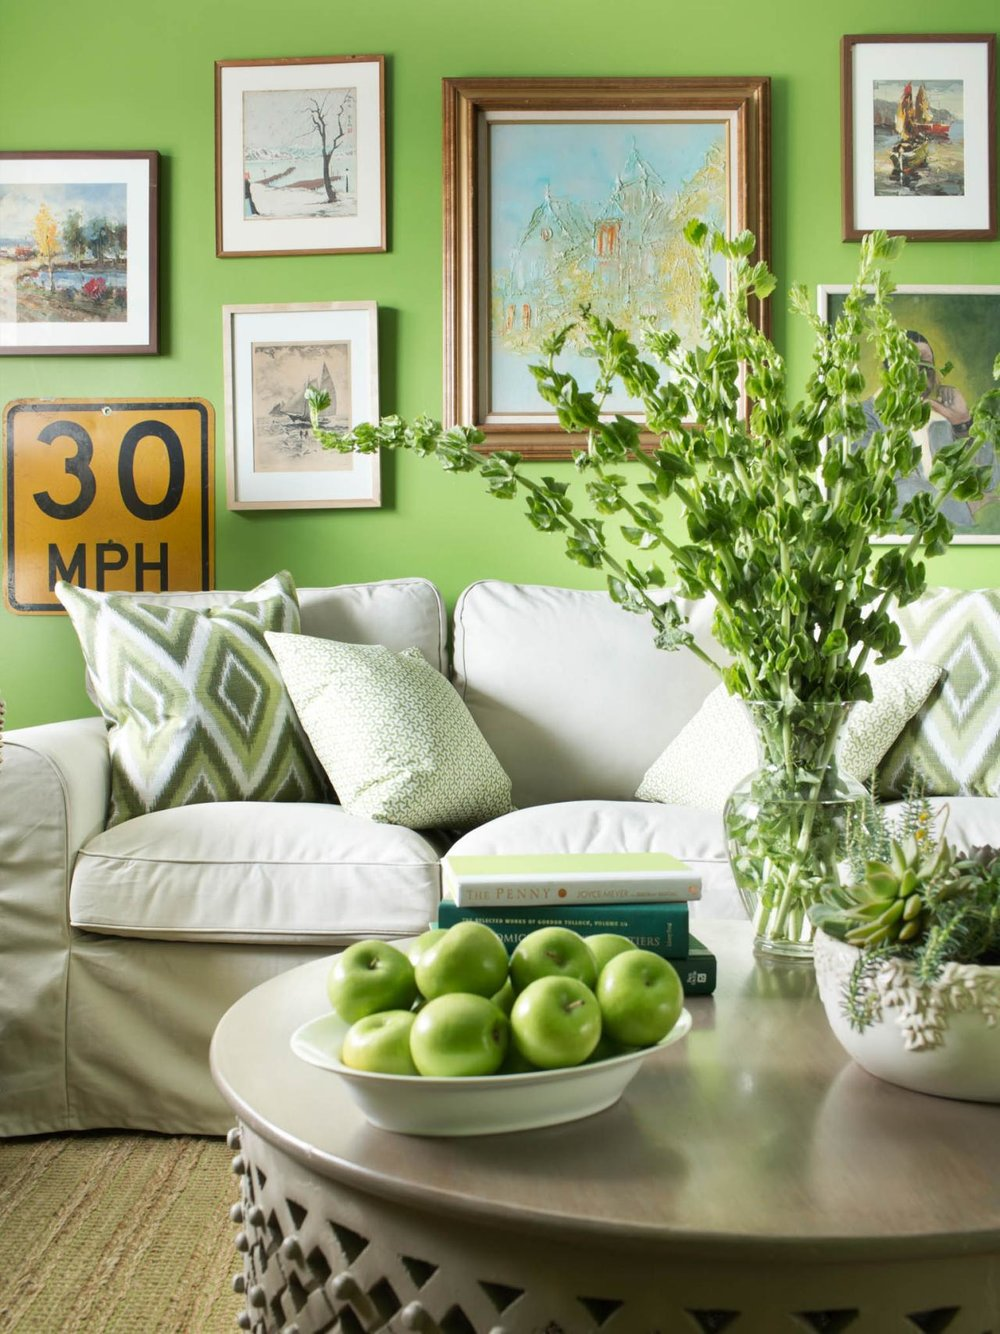 Incorporating Pantone Greenery